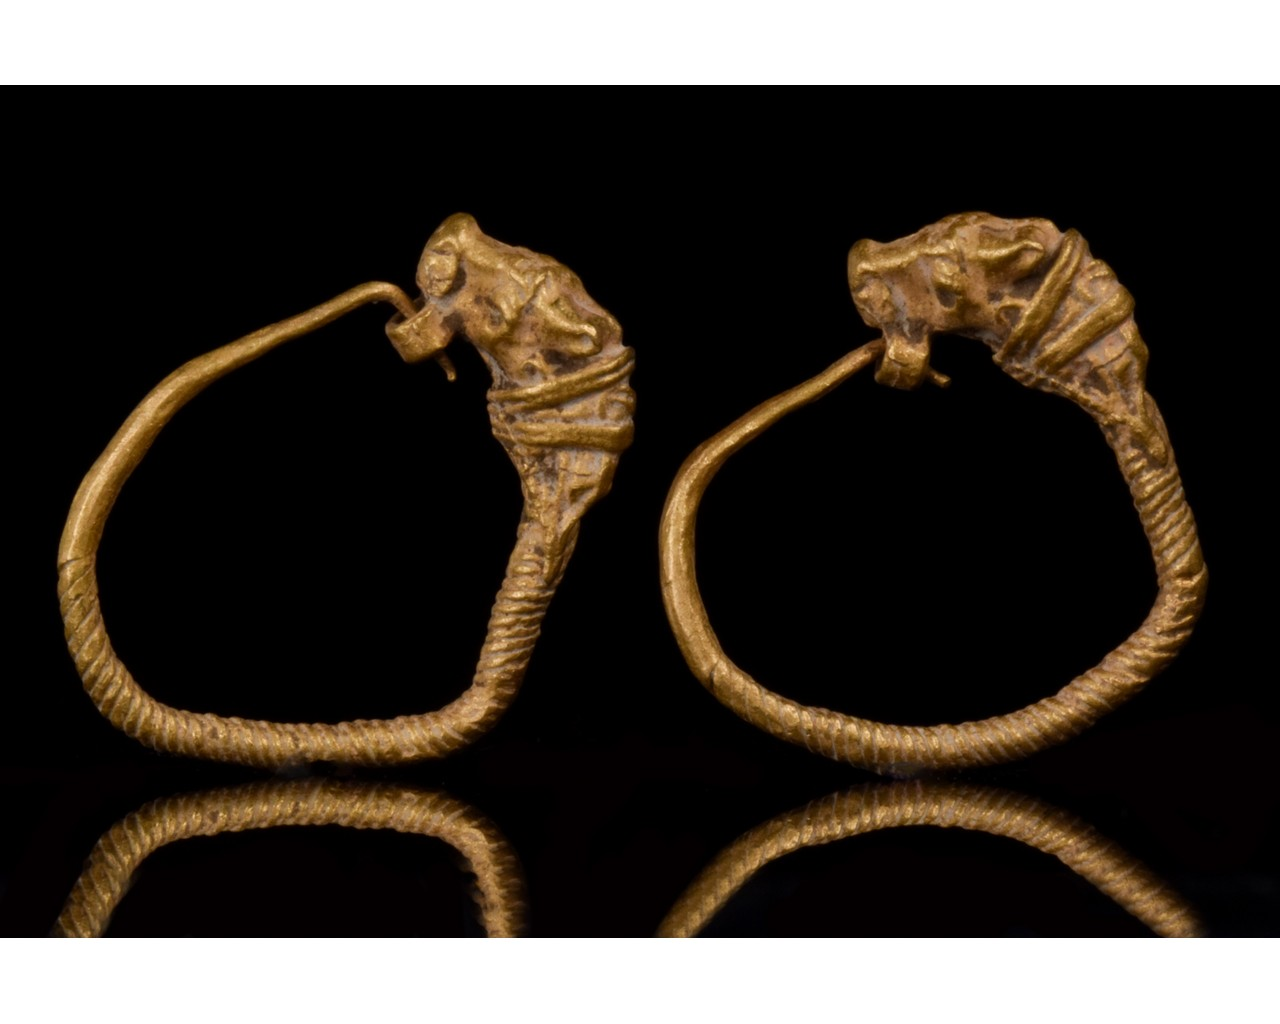 HELLENISTIC GOLD EARRINGS WITH LIONS - XRF TESTED - Image 2 of 8